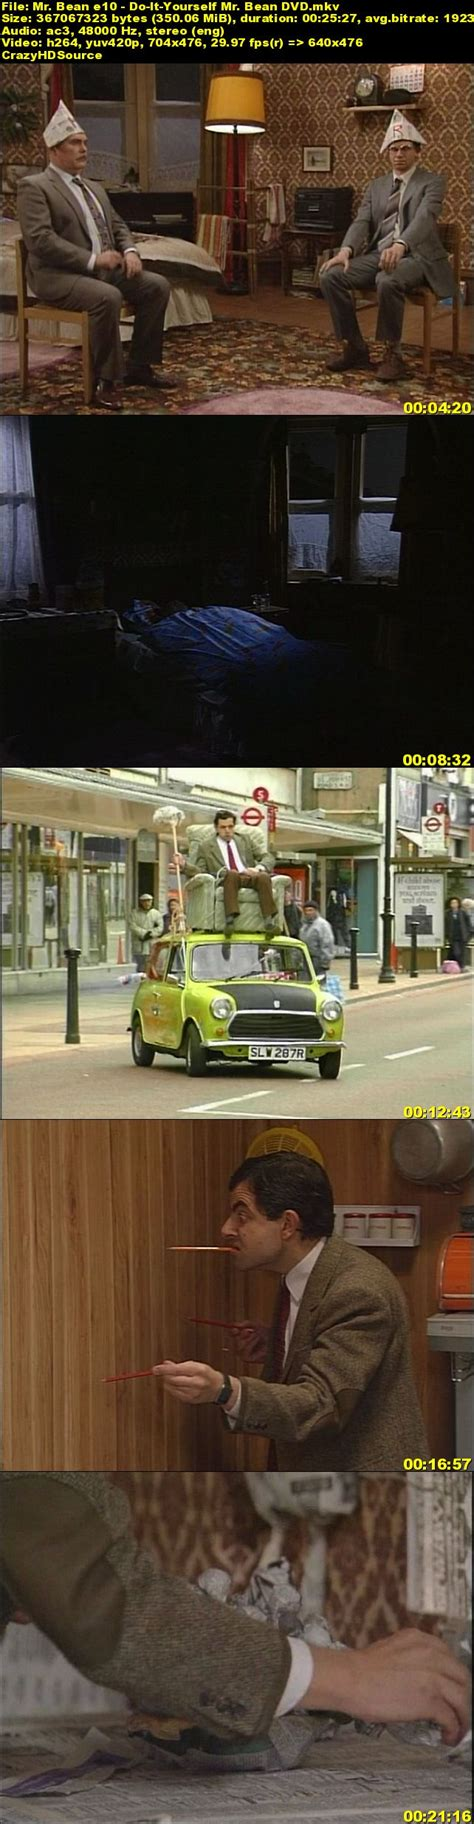 Mr bean complete collection box set dvd eur 22 77 17812810815 mr bean complete dvds collection solutioingenieria Image collections